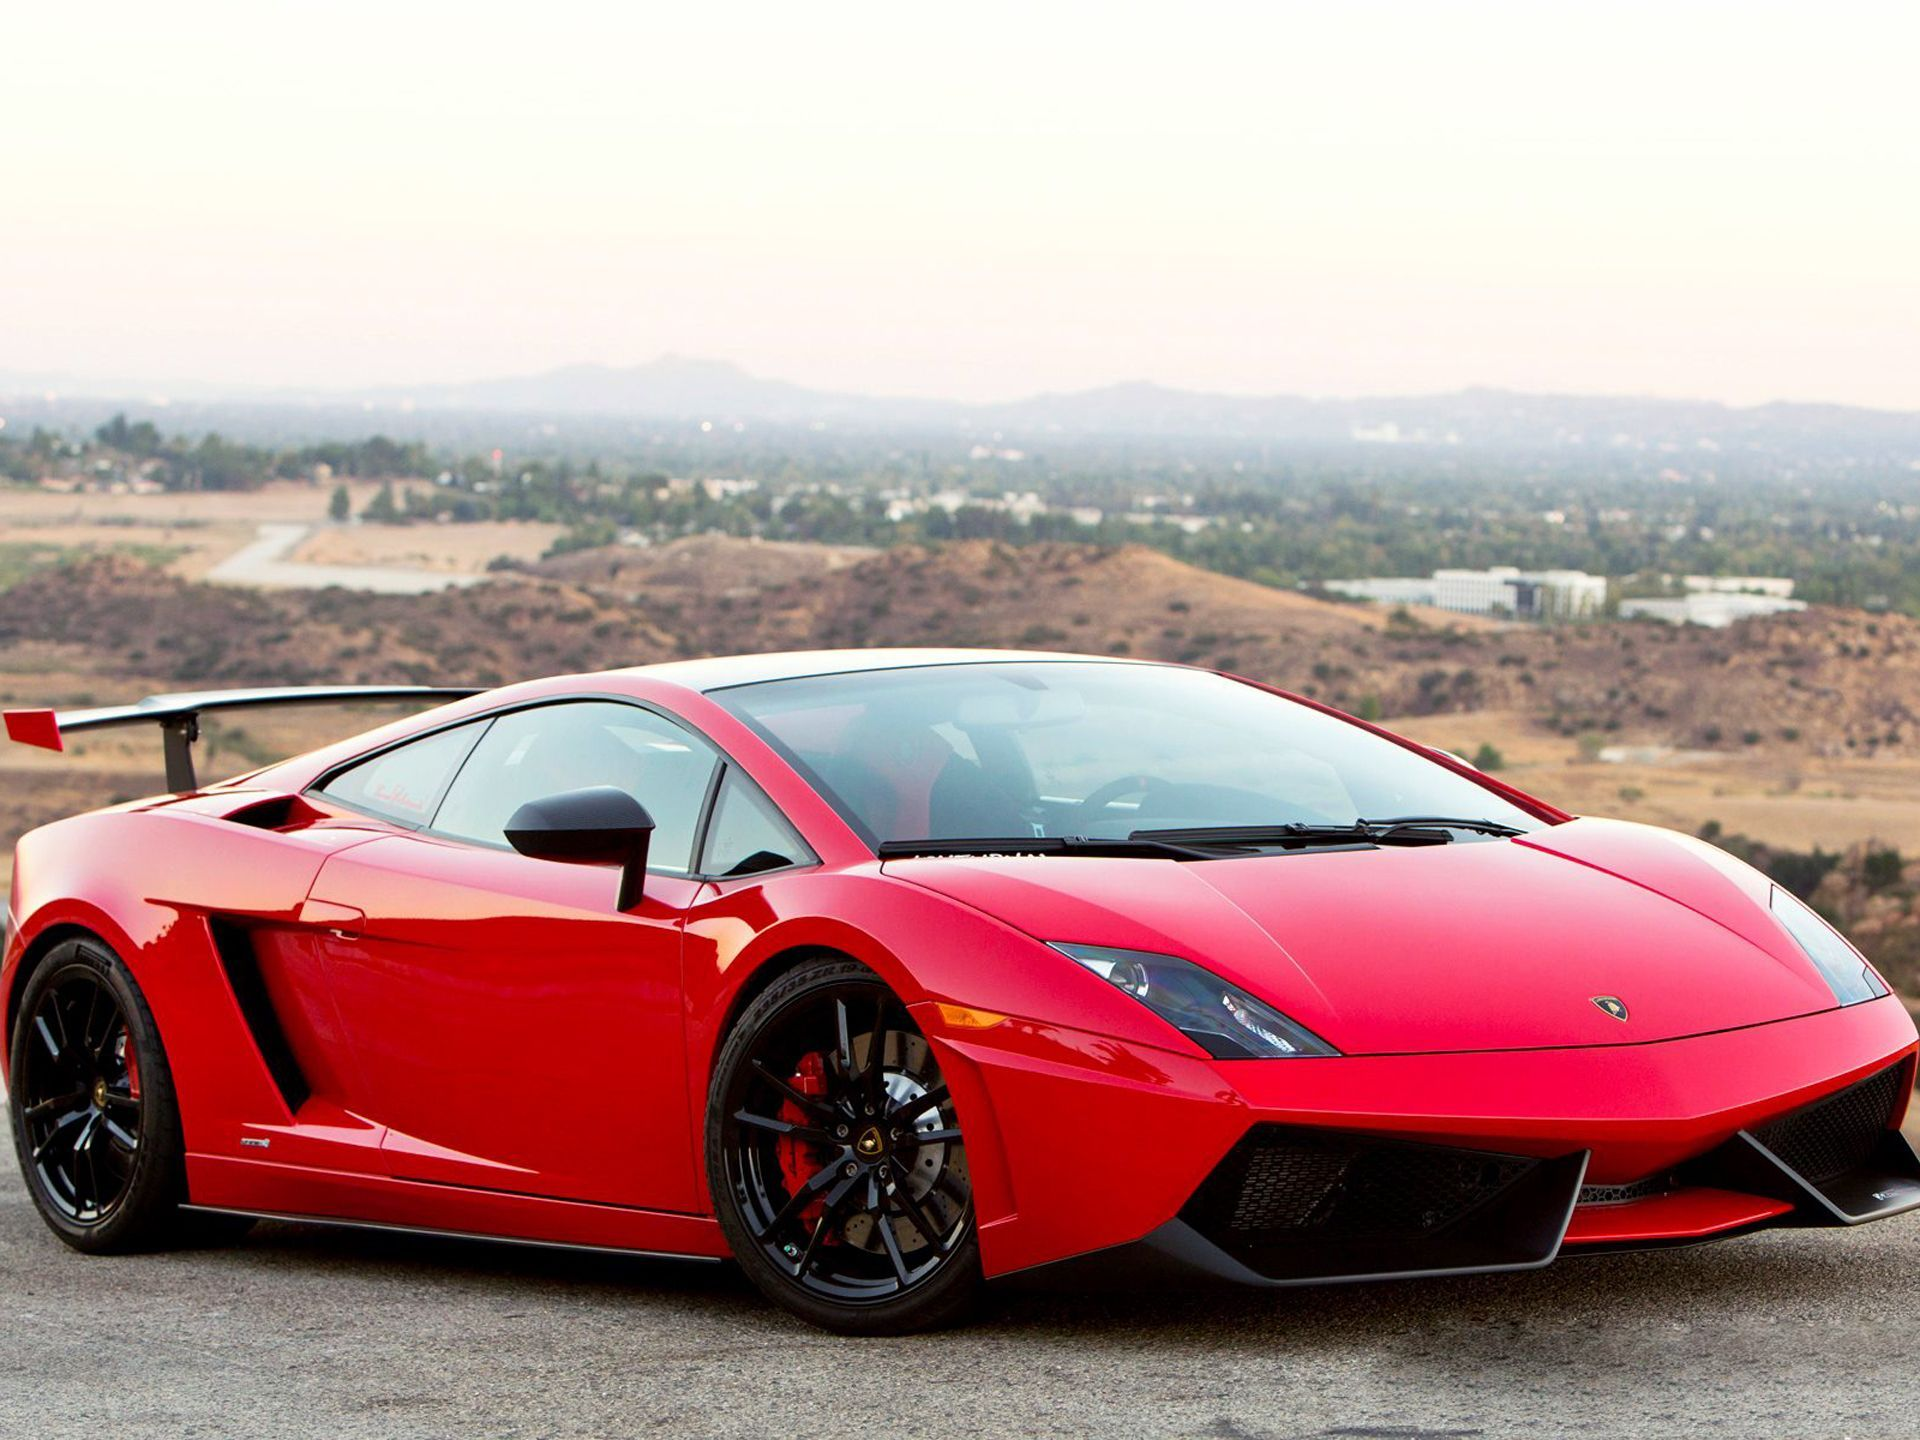 lamborghini gallardo lp570 4 super trofeo stradale coupe red